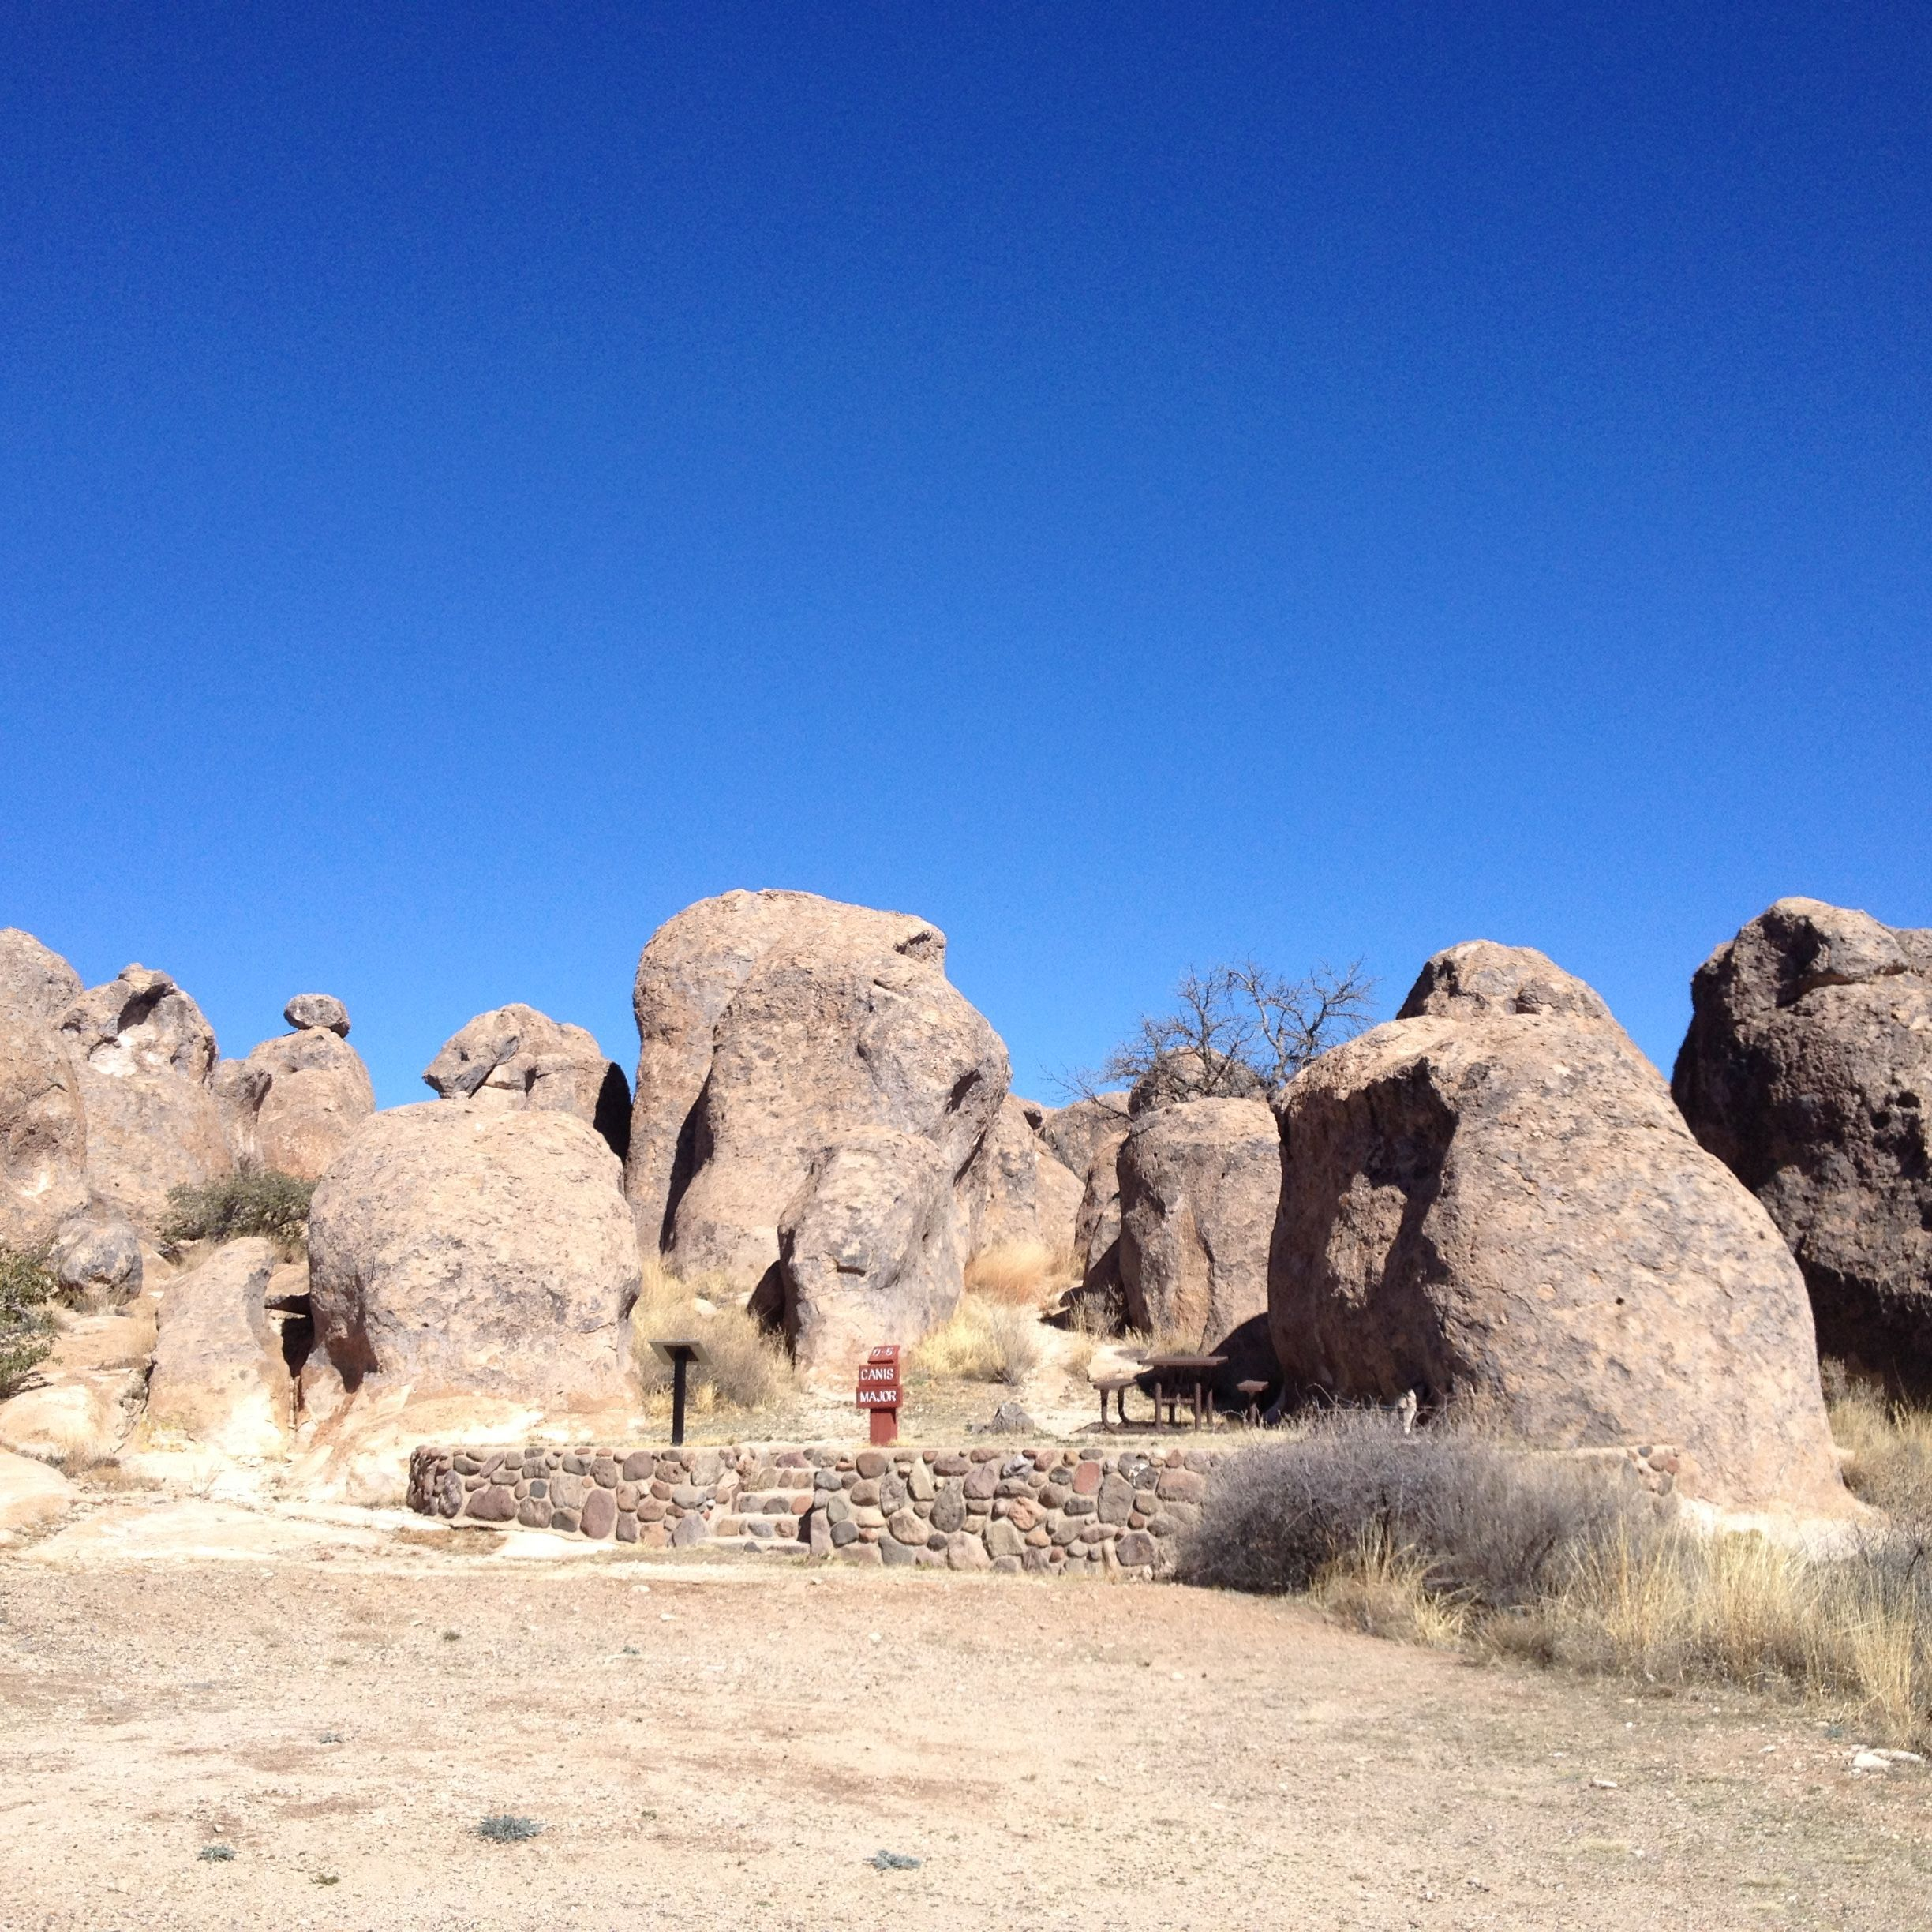 Picnic sites in amongst the rocks